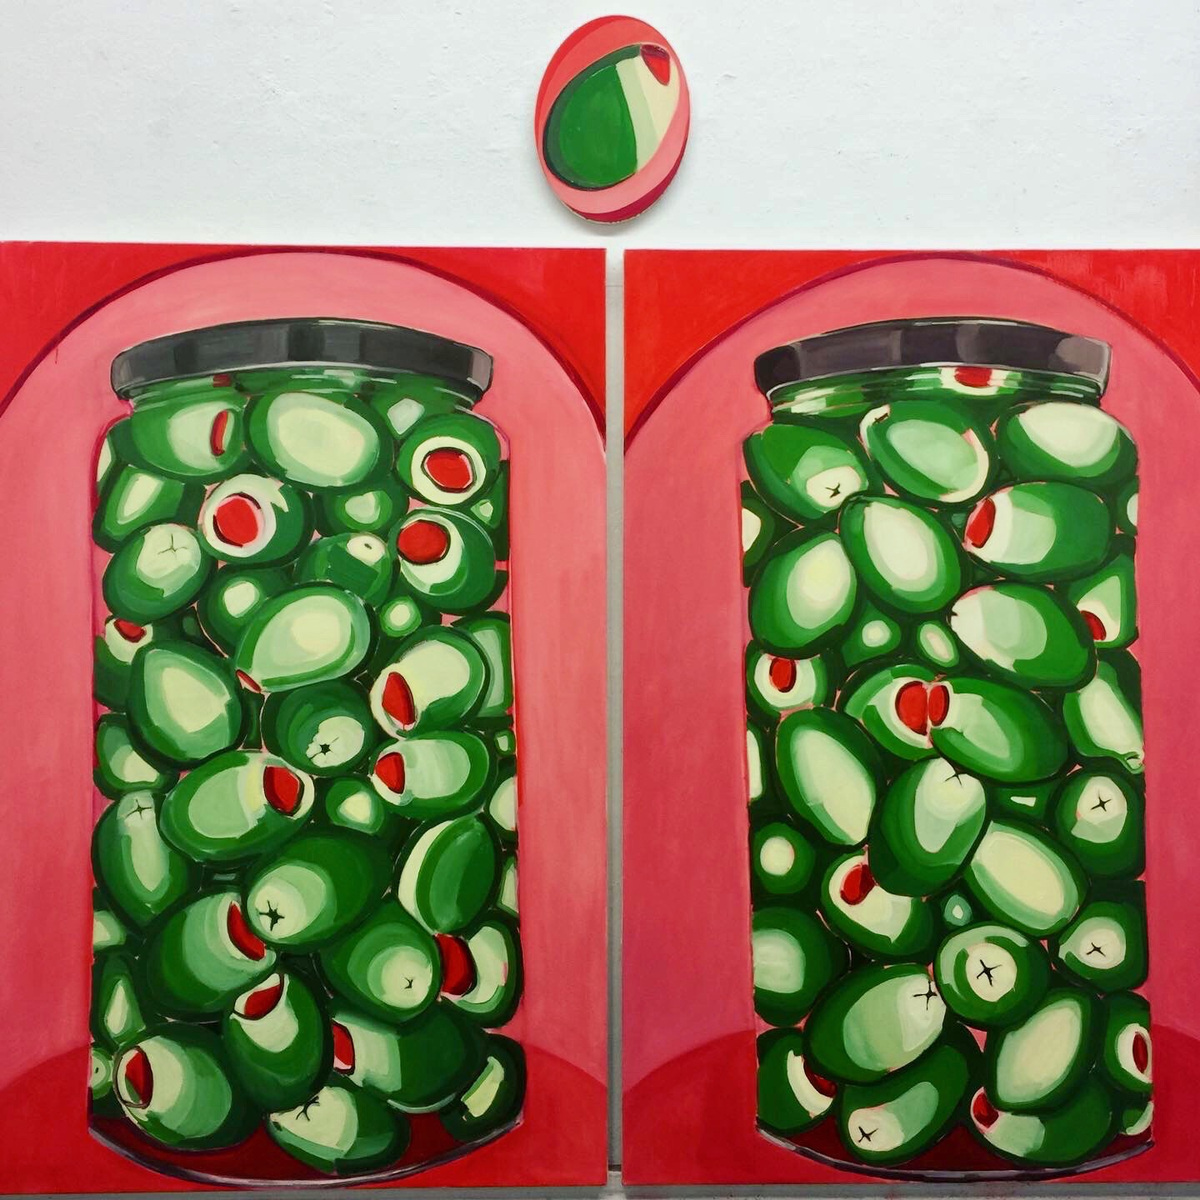 Anna Choutova - Olive Temple Oil on Canvas2 x 180 cm x 120 cm